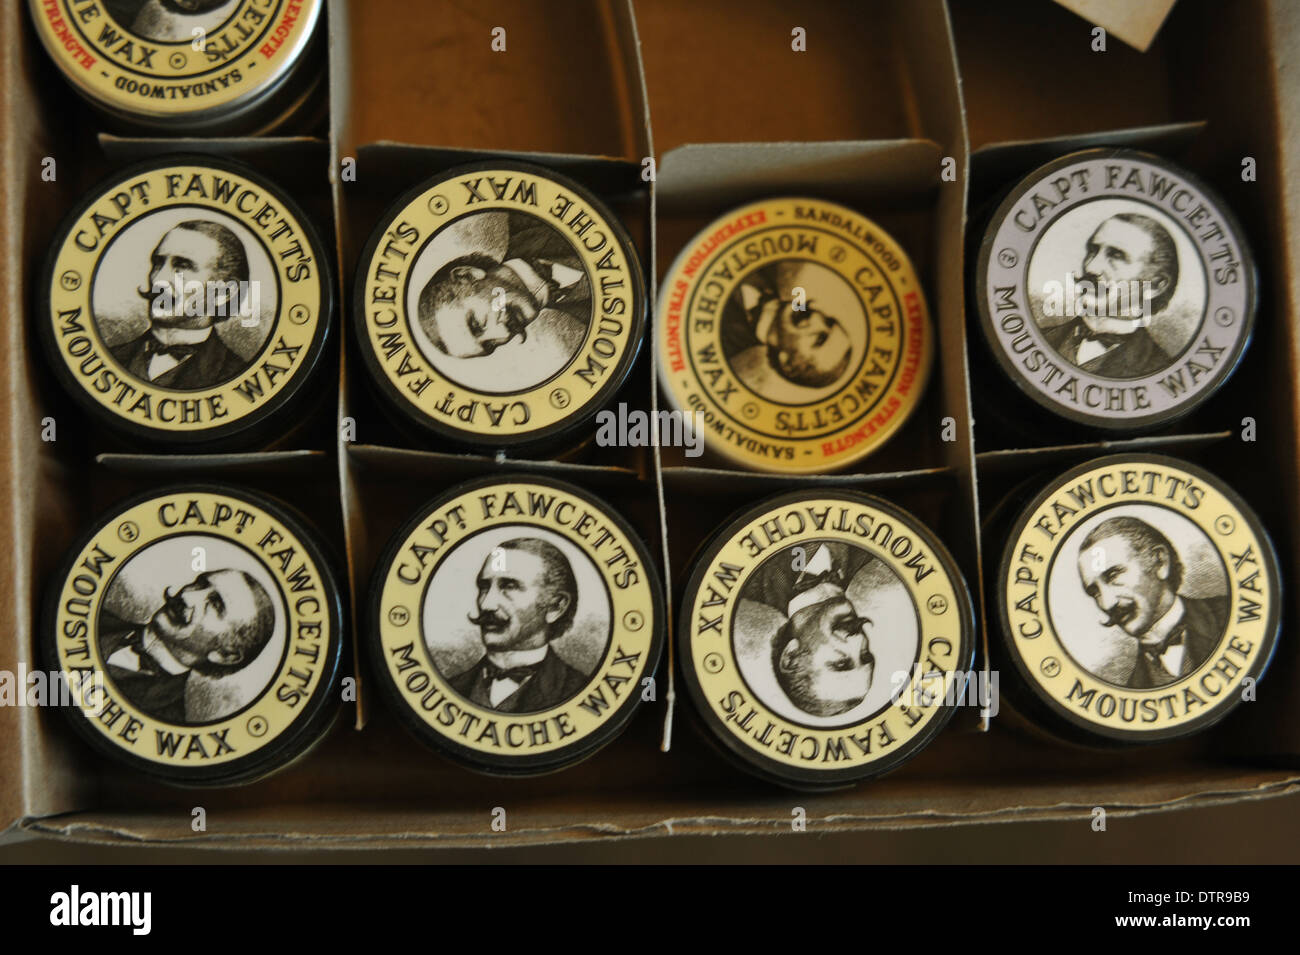 Moustache Wax, New York Barbershop, Rotterdam. Editorial use only. - Stock Image